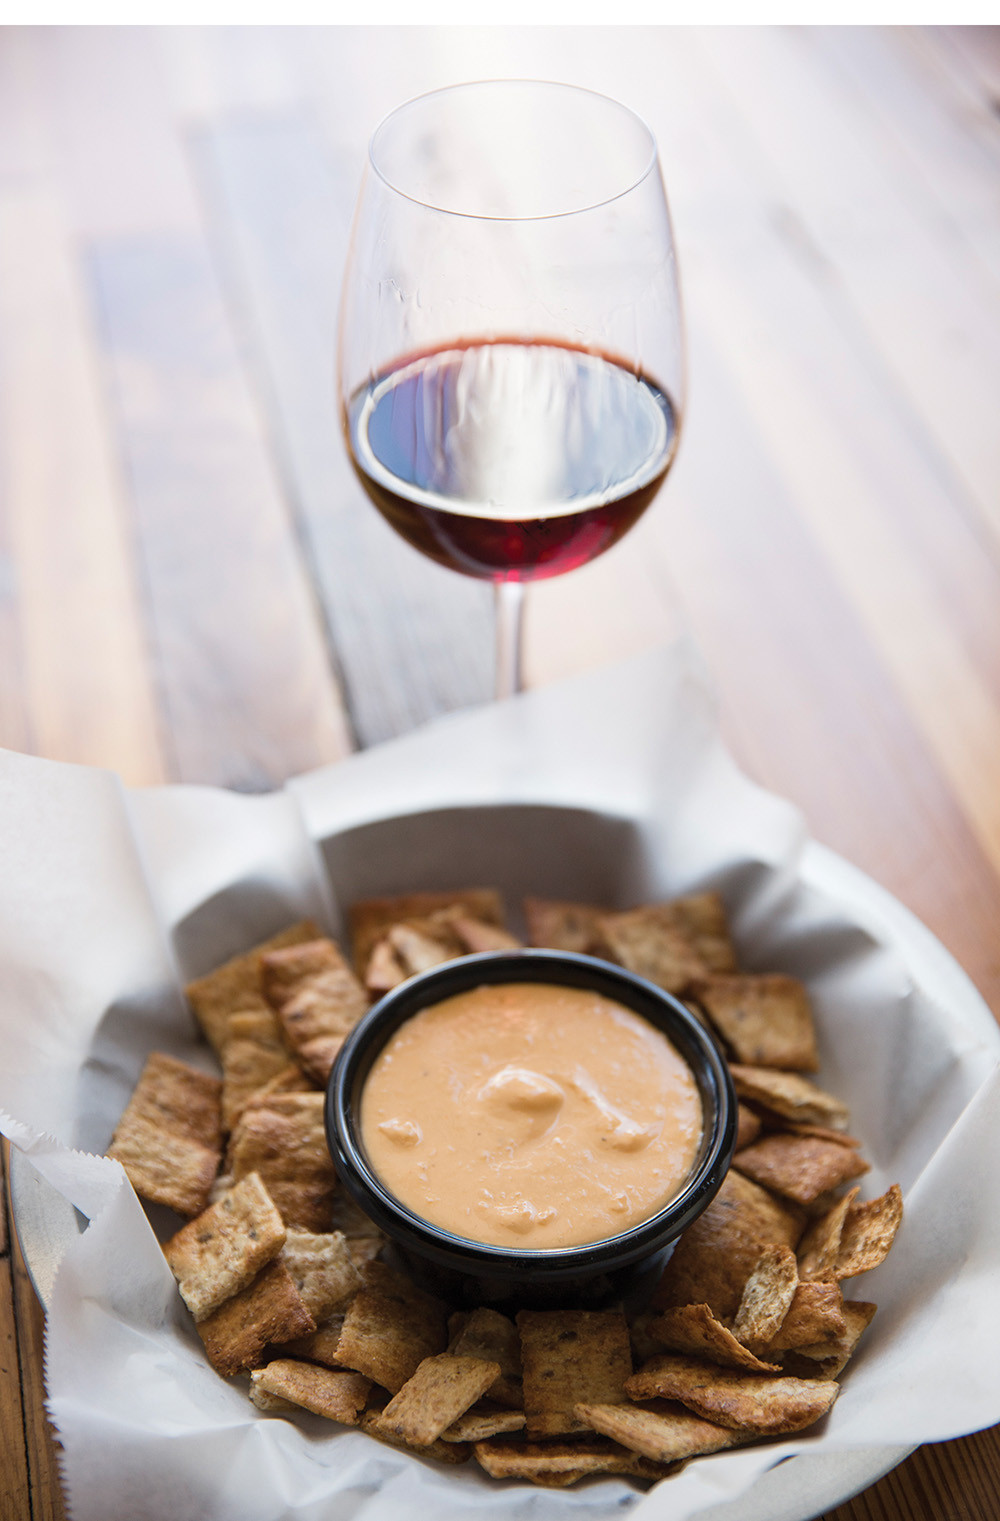 dish of gourmet crackers and dipping sauce with a glass of red wine